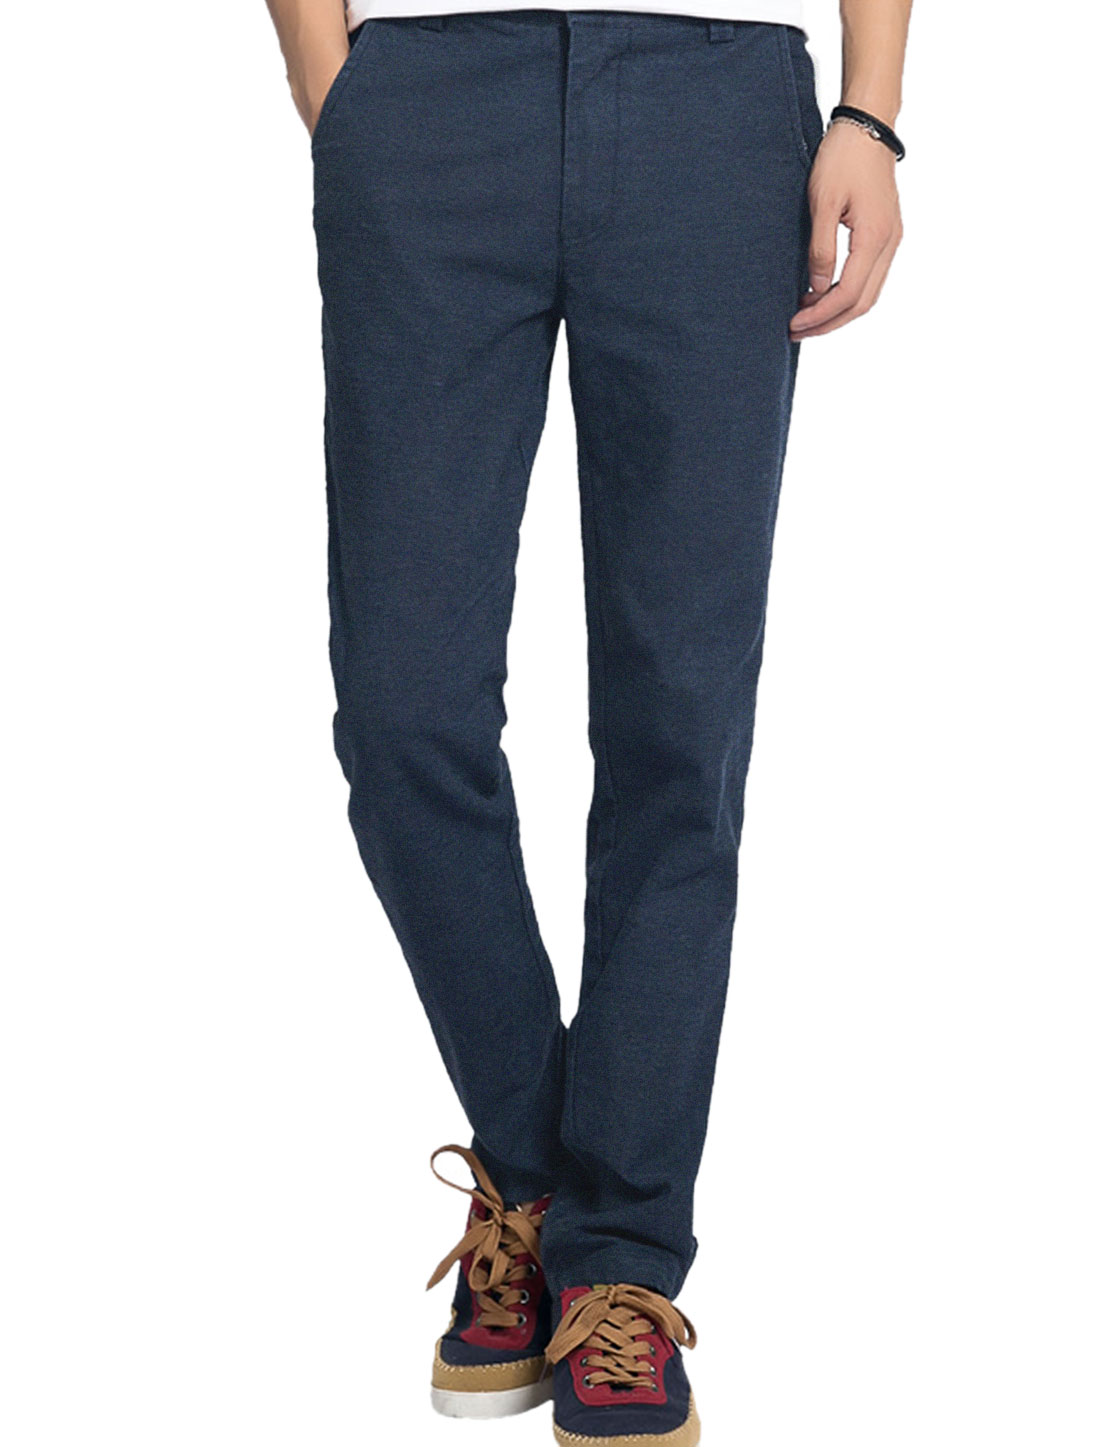 Men Zip Fly Slant Front Pockets Slim Leisure Pants Navy Blue W34